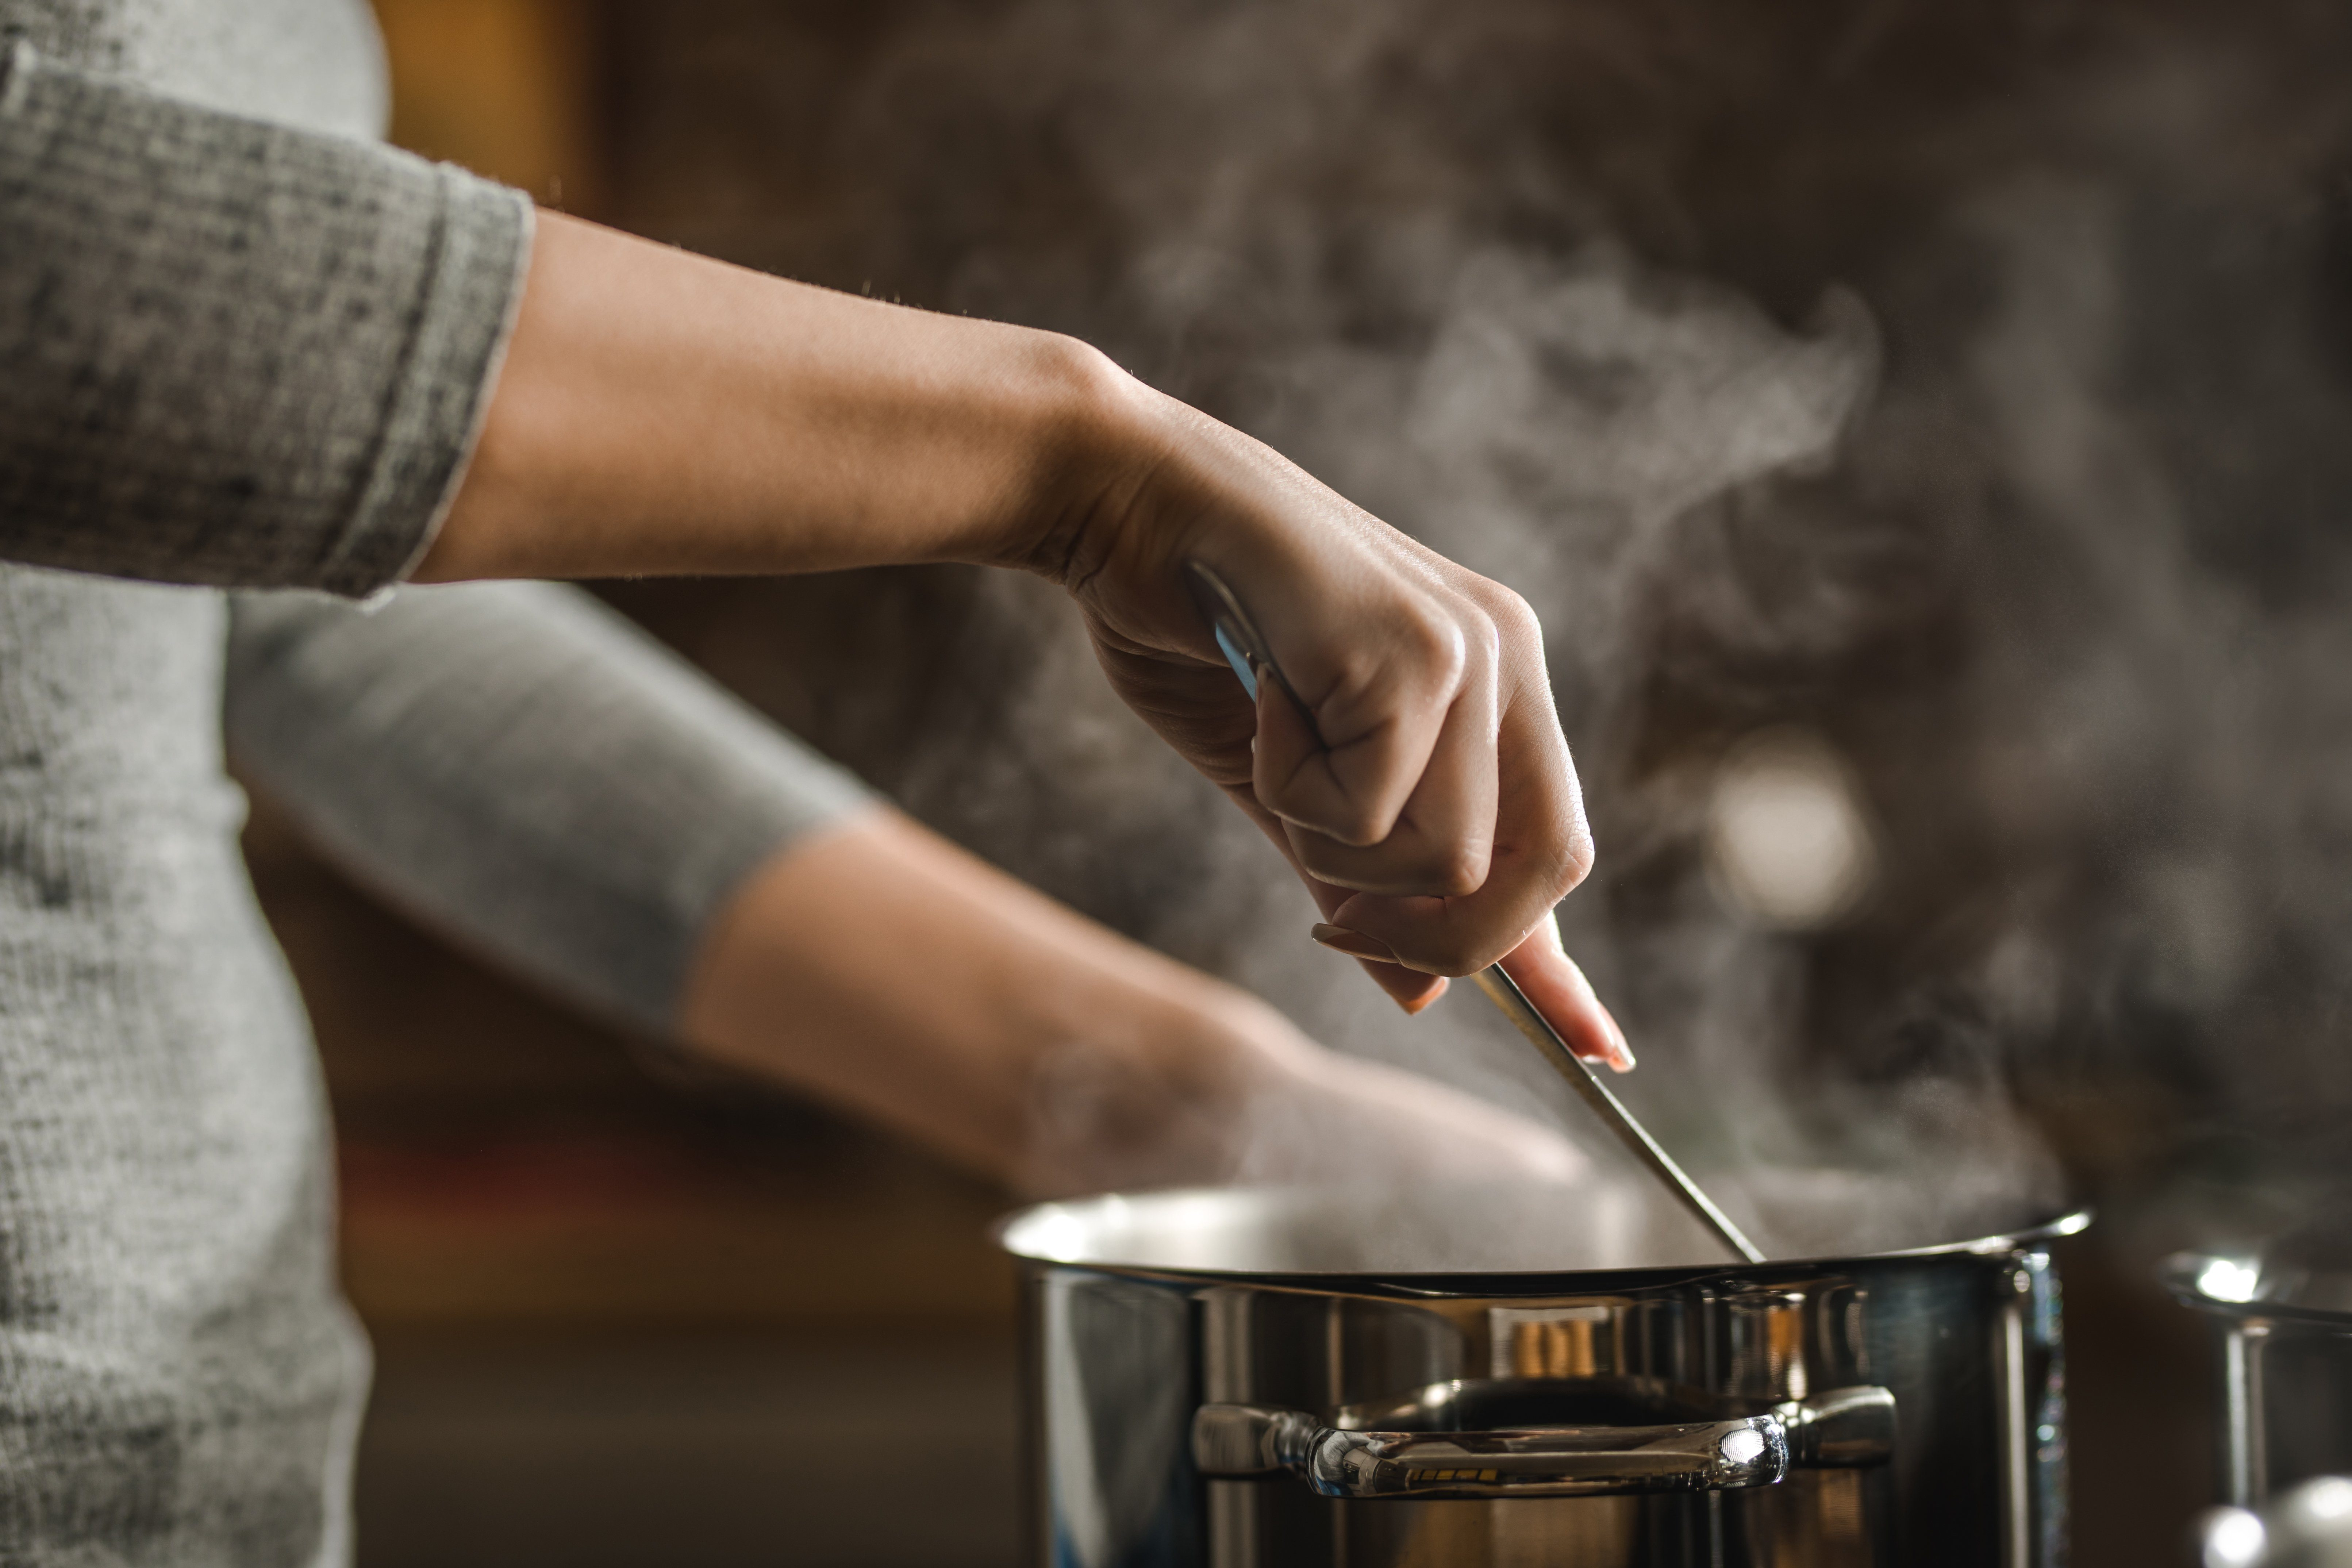 Unrecognizable woman stirring soup in a saucepan while making lunch.